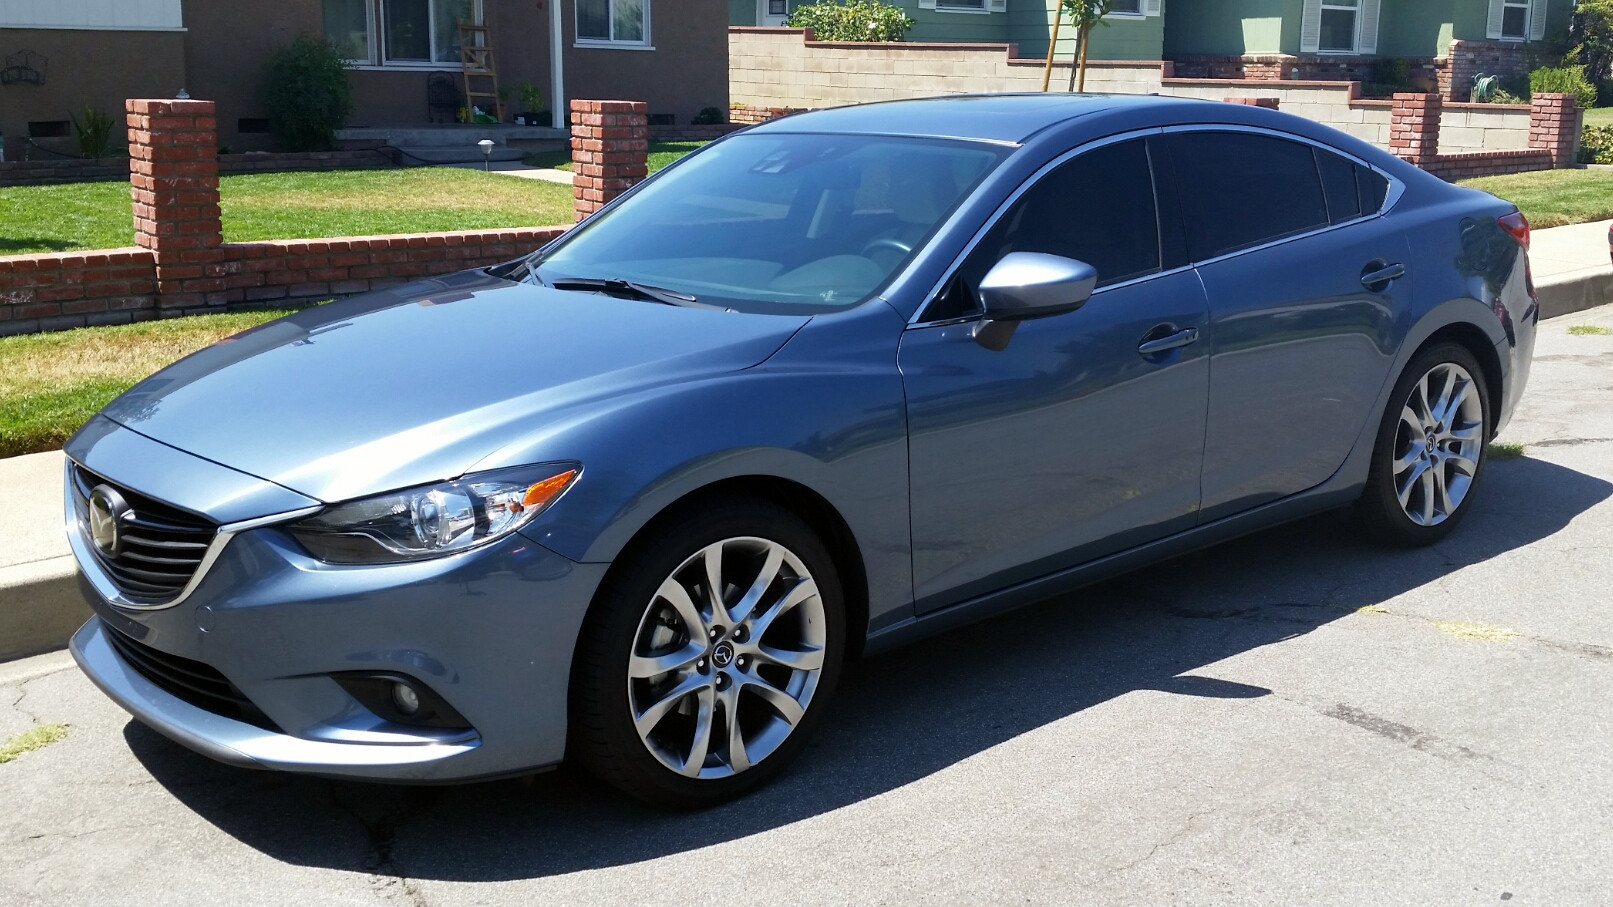 Mazda6 with tinted windows